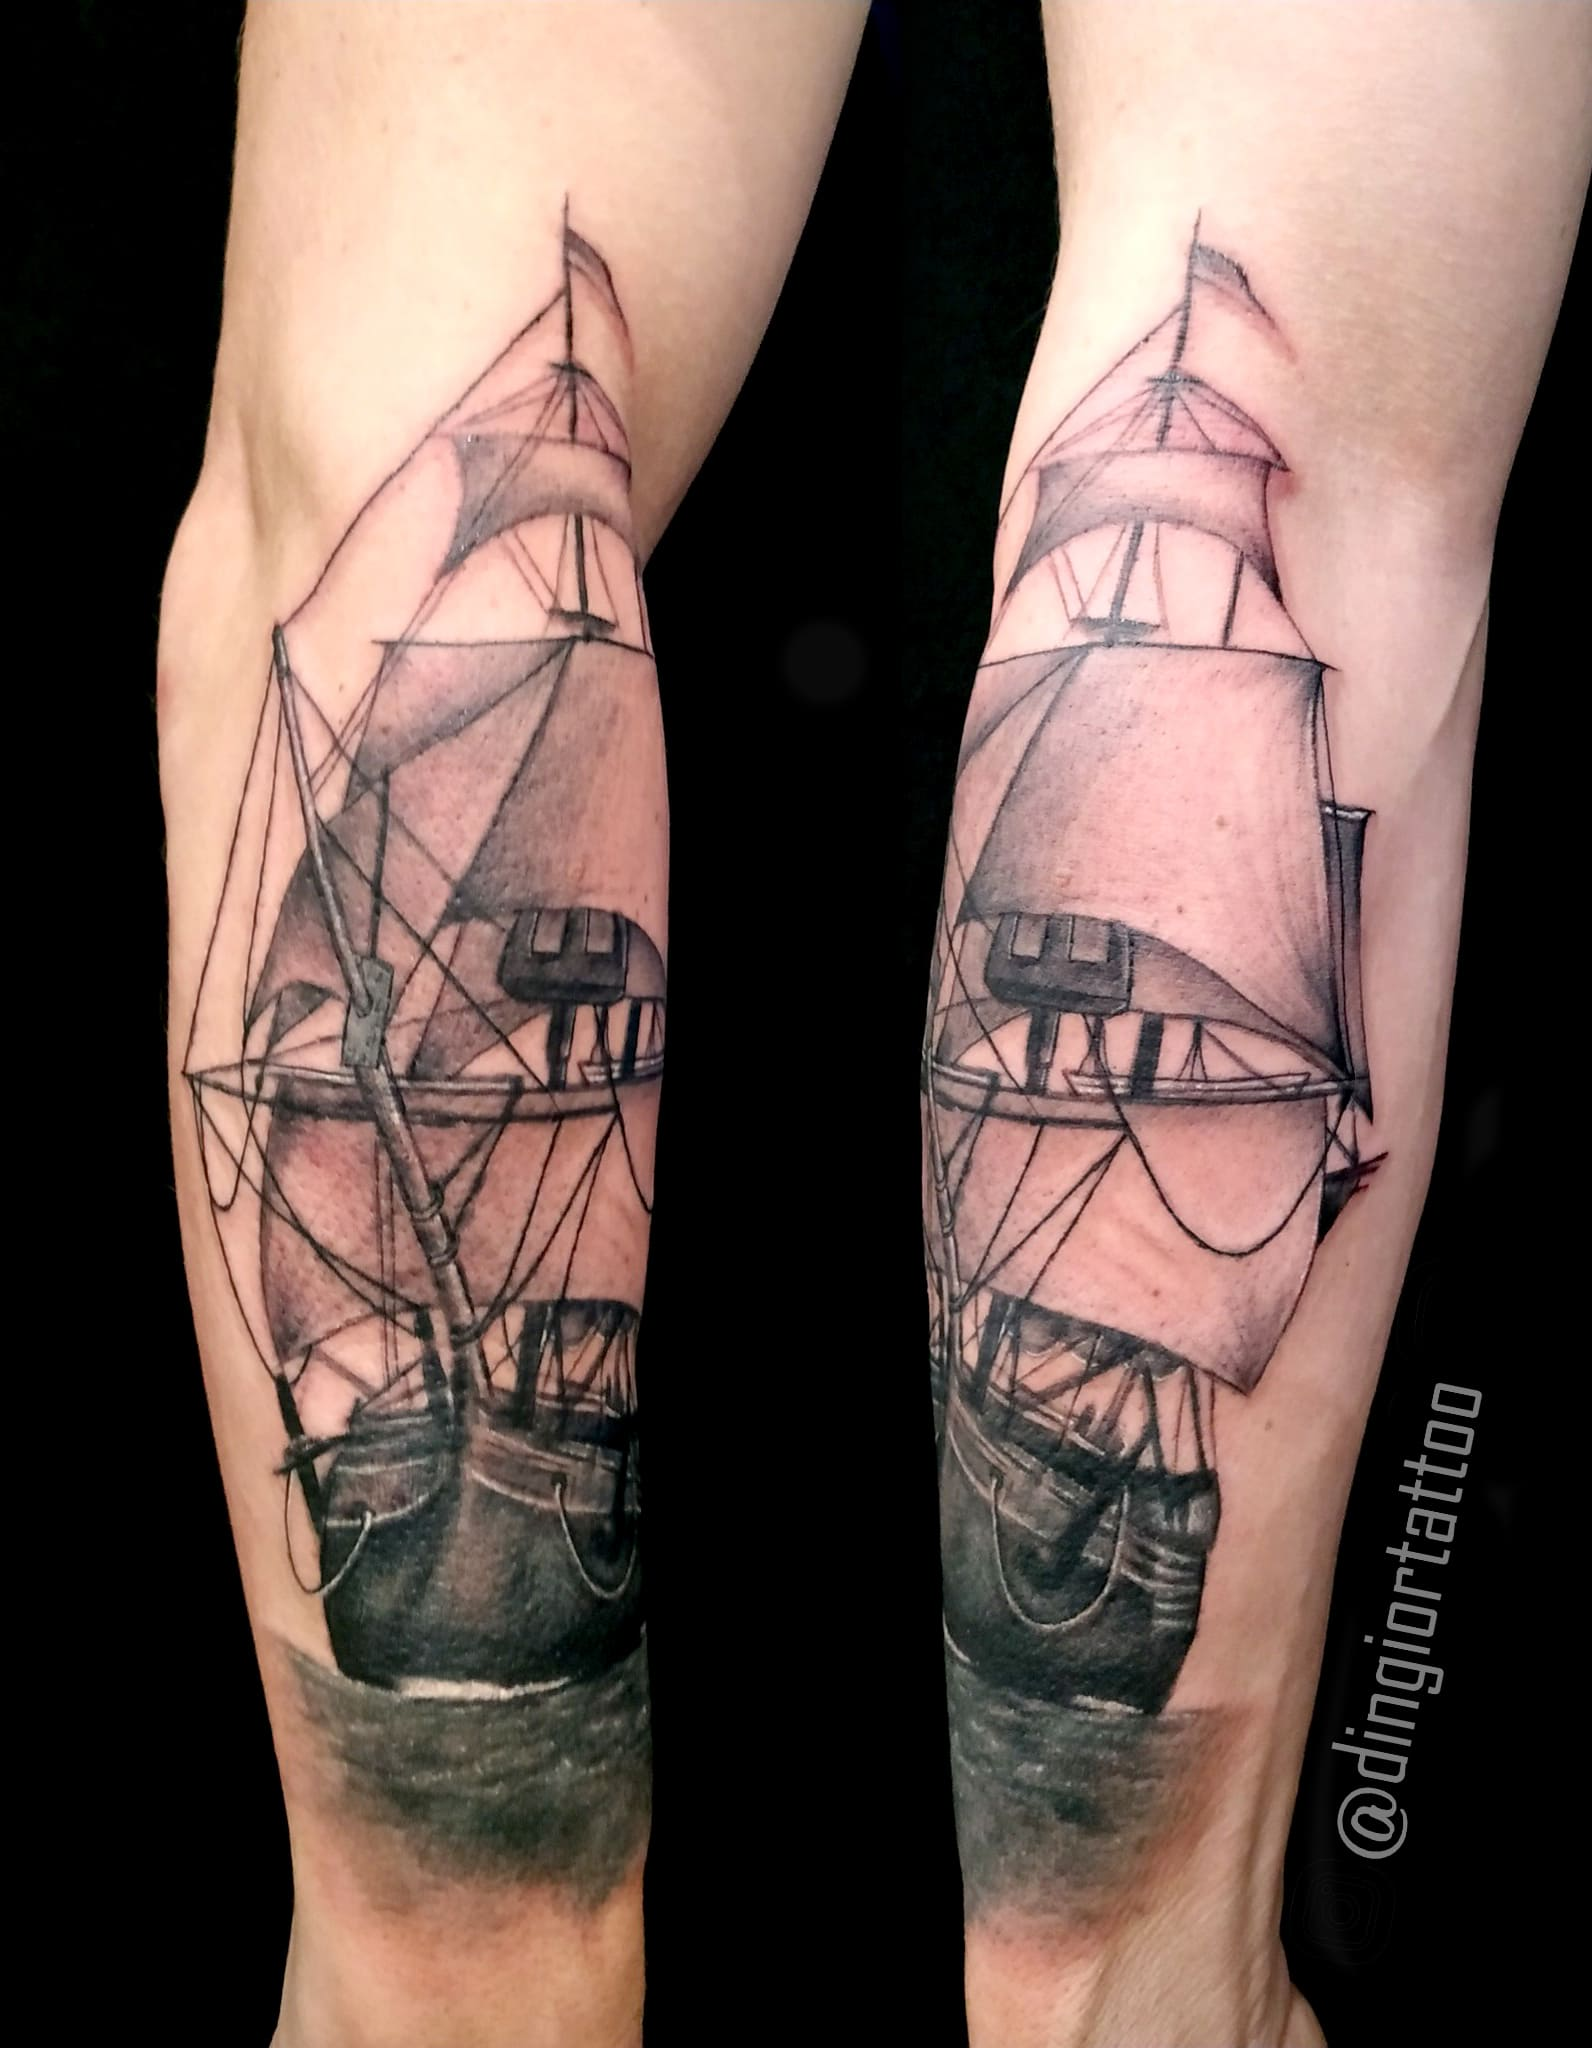 Realism or Realistic Tattoos Ship Tattoo